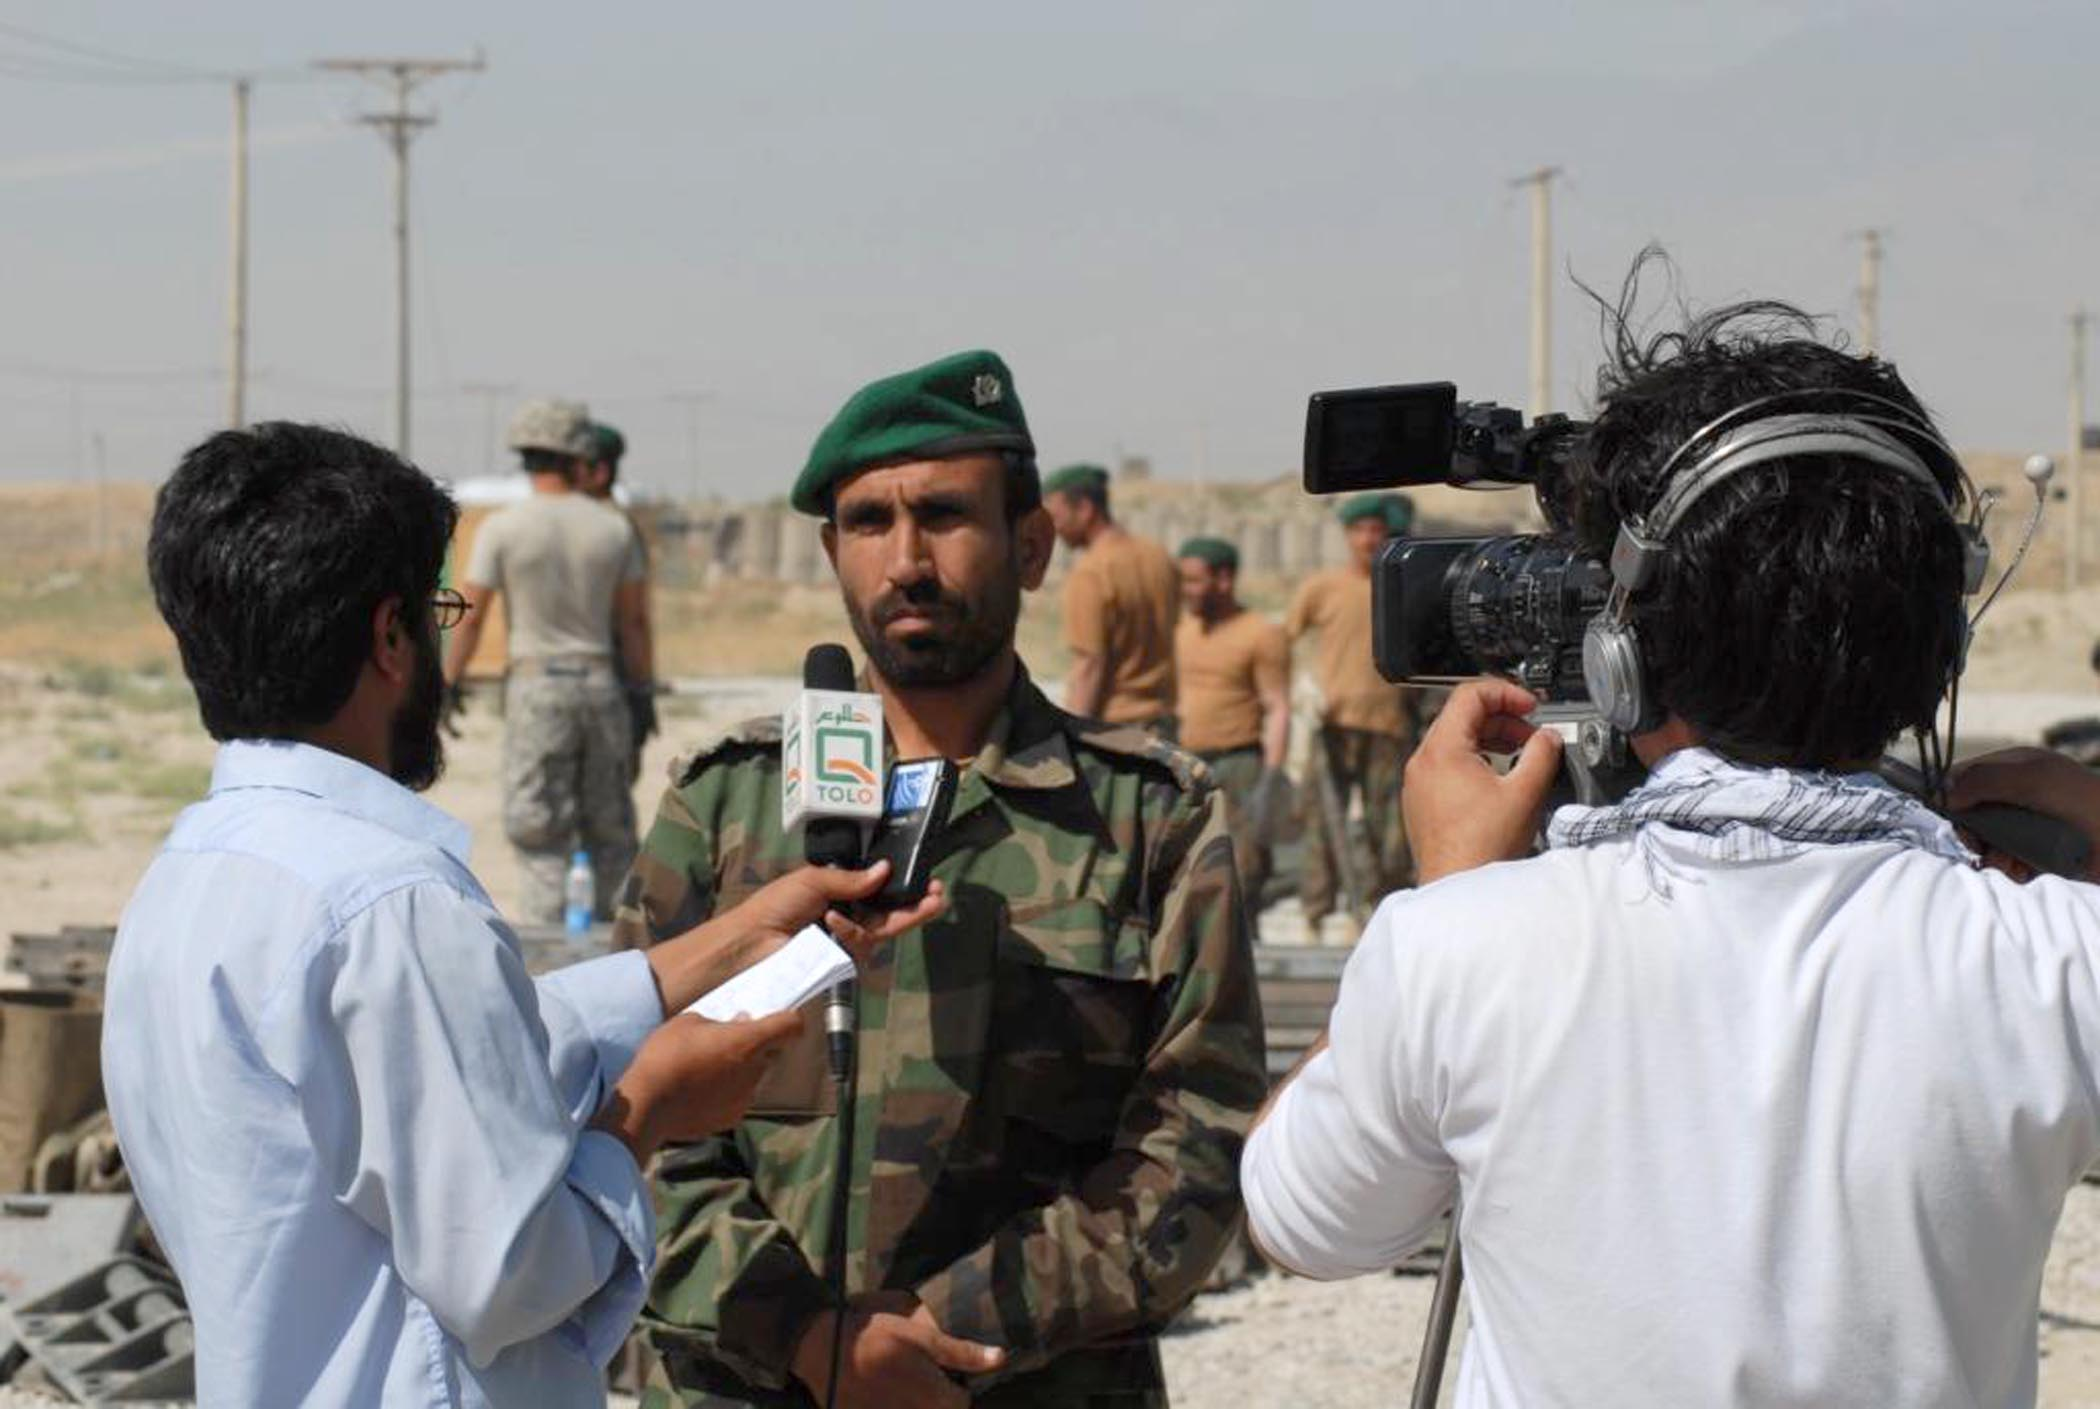 Afghanistan_Tolo_TV_Picture_(Ashley_Dellavalle).jpg